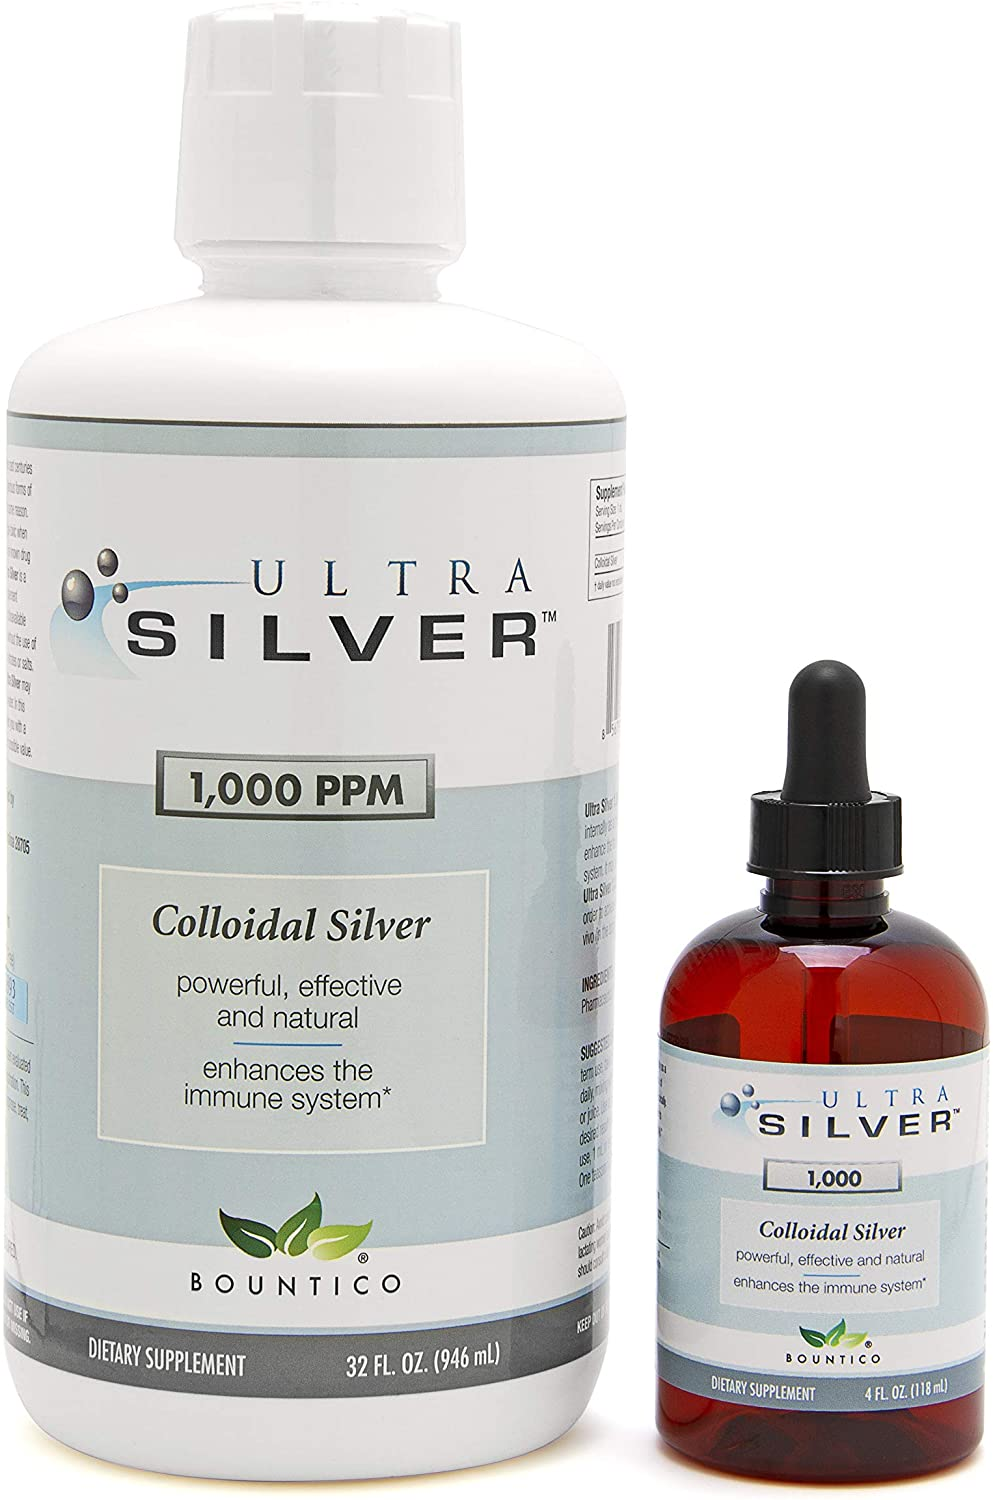 Ultra Silver® Colloidal Silver | 1,000 PPM, 32 Oz (946mL) | Mineral Supplement | True Colloidal Silver - 4 oz Dropper Bottle (Empty) Included for Dispensing!